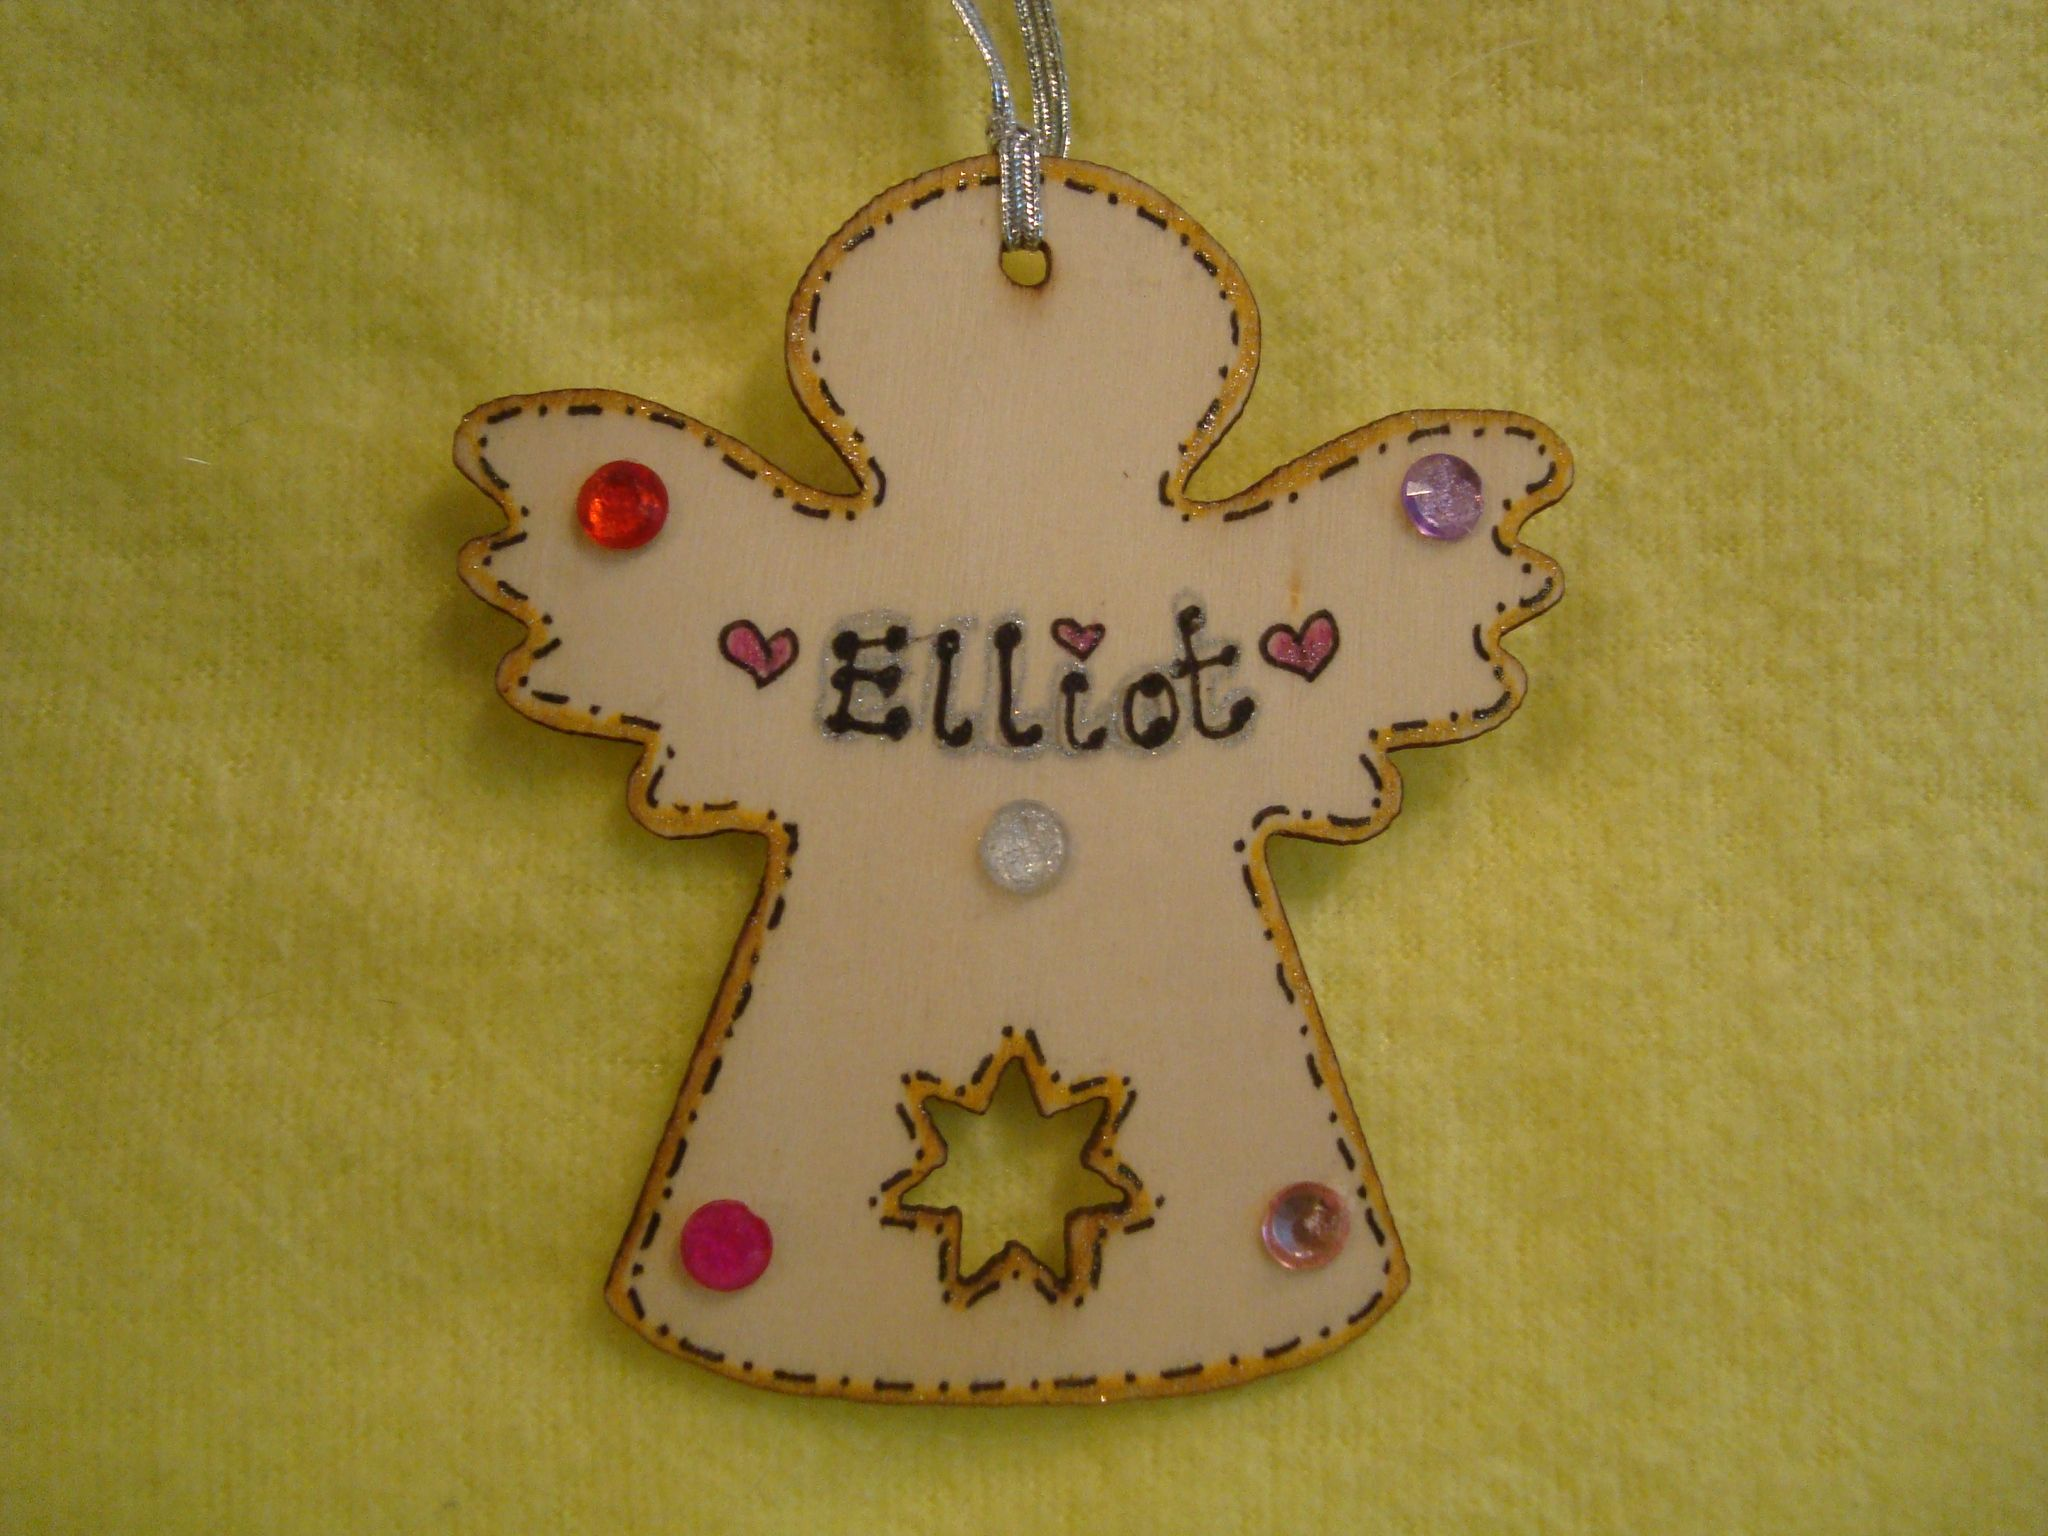 Angel Shaped Christmas Tree.2017 Personalised Wooden Fairy Angel Shaped Christmas Tree Hanger With Gem Decorations Any Name